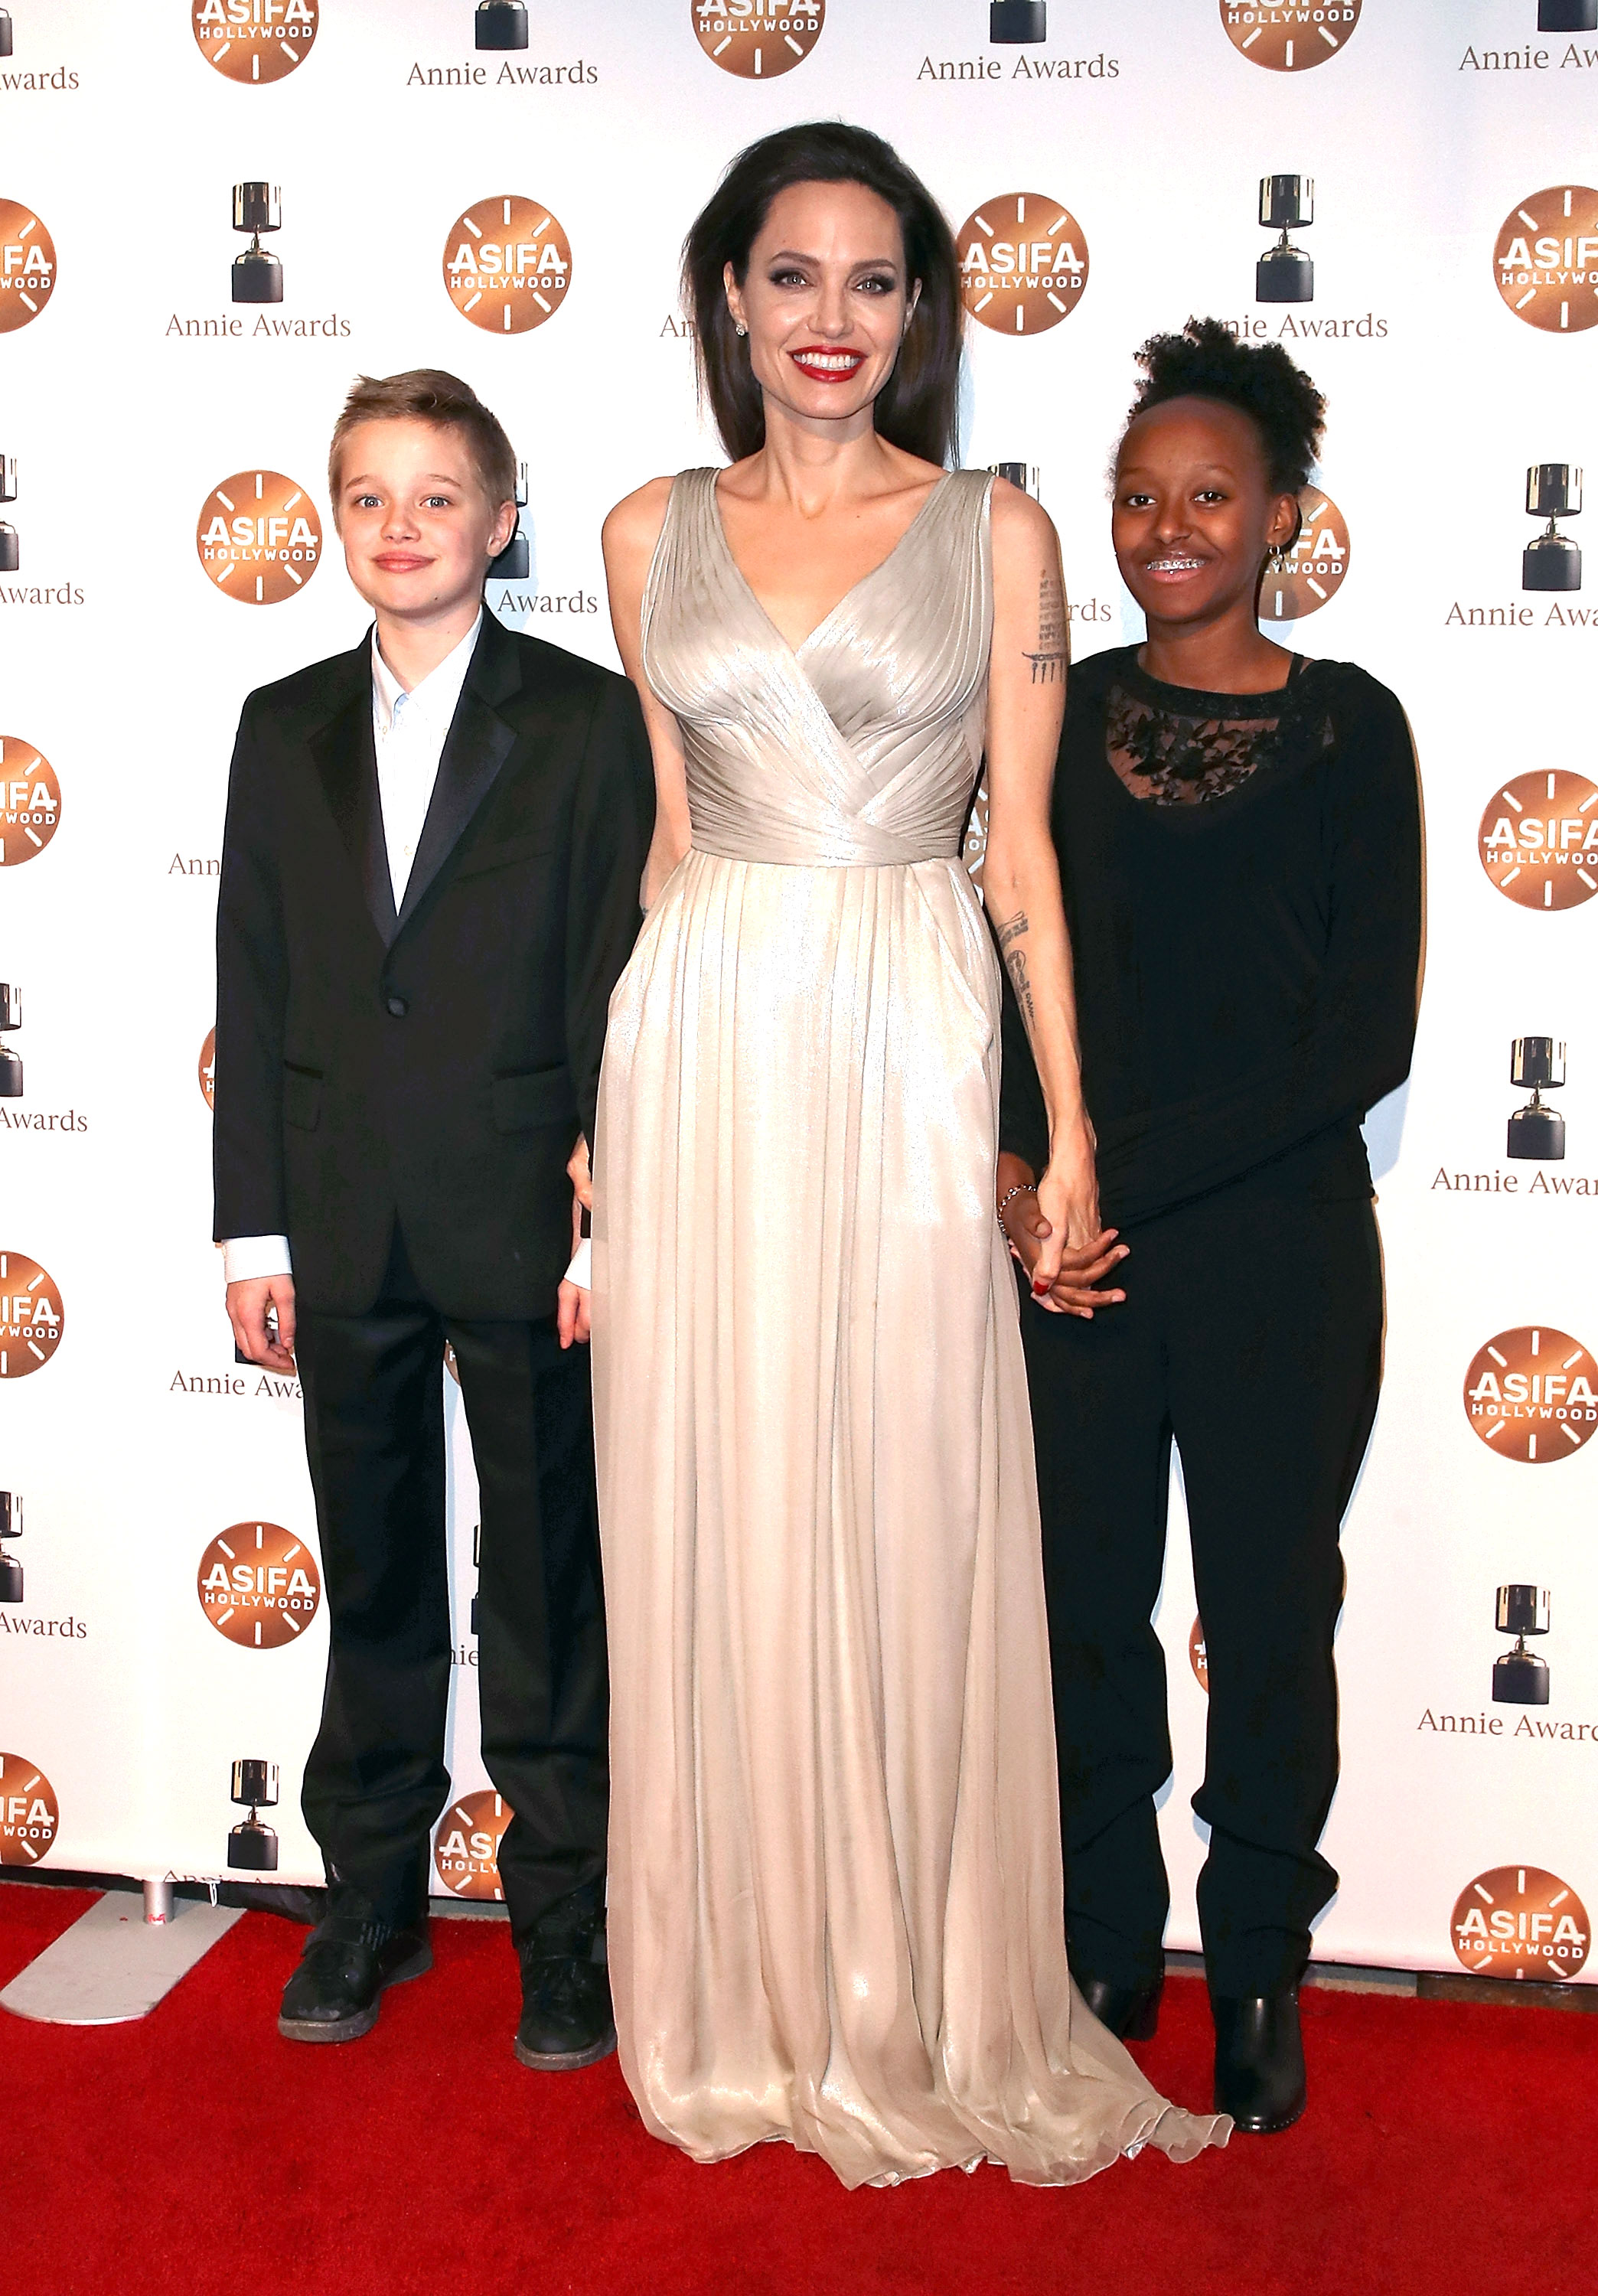 Angelina Jolie - The Oscar-winning actress took Shiloh (L) and Zahara as her dates to the 45th Annual Annie Awards in L.A. on February 3, 2018. Jolie was dressed in a floor-length silver gown, while Shiloh opted for a black suit and Zahara wore a black lace top and black pants.